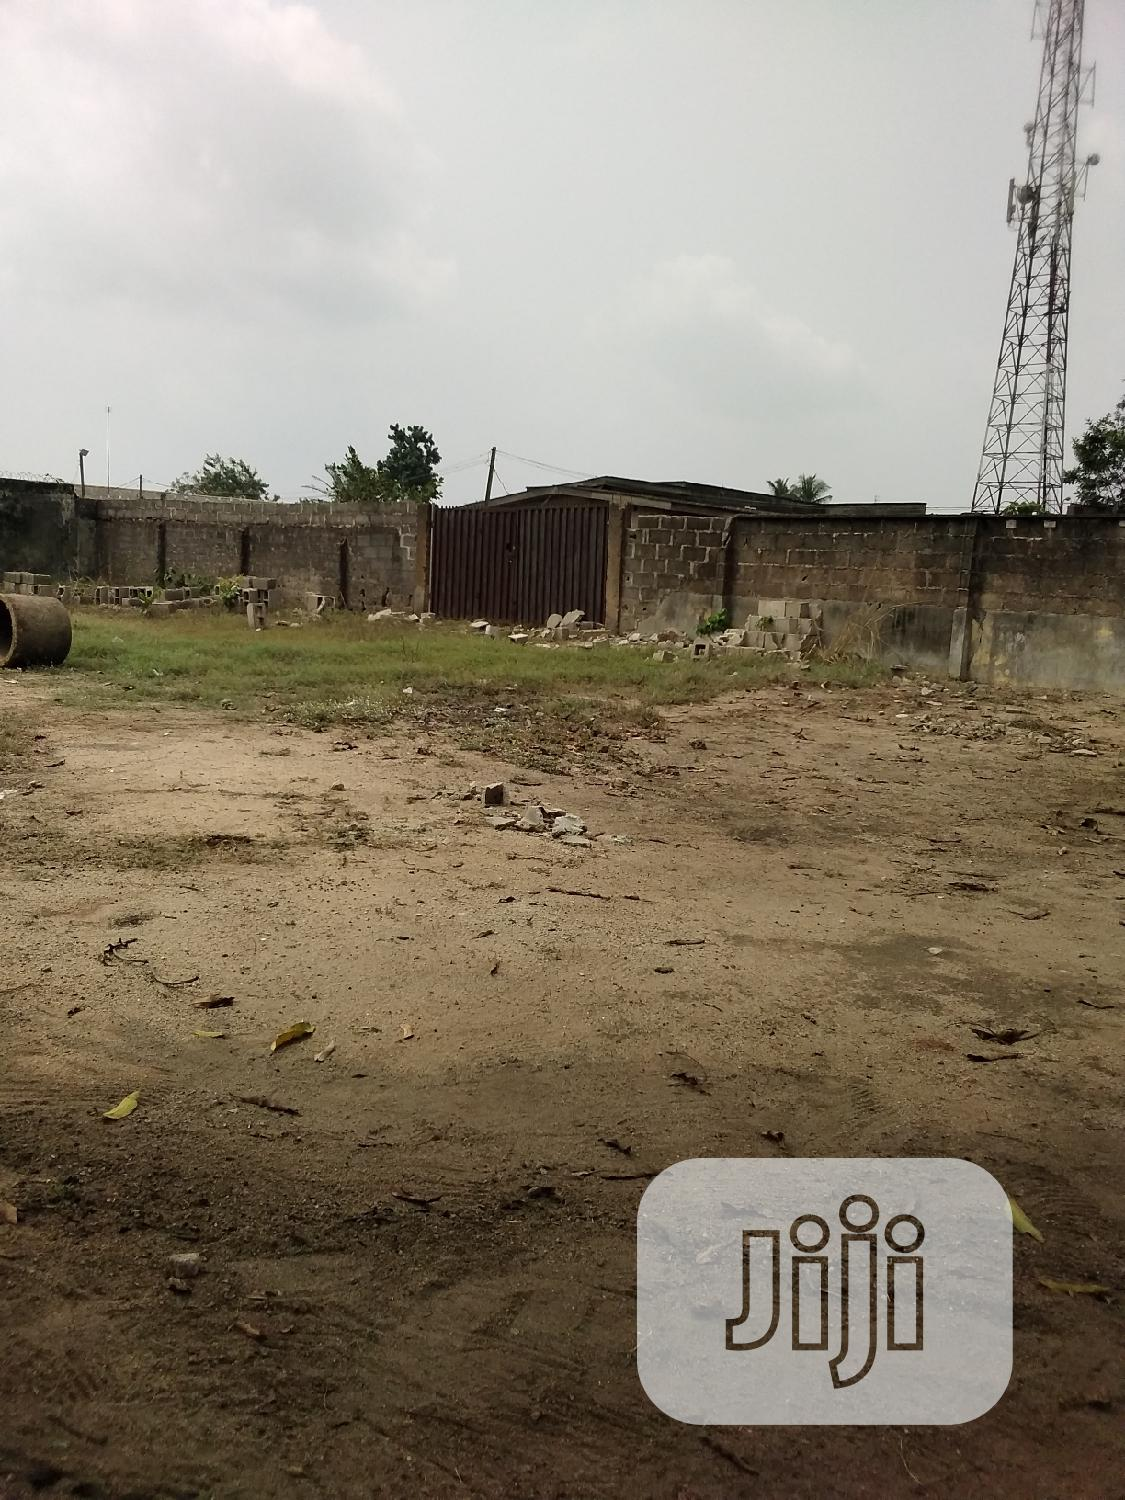 A Big Party Space for Rent in a Fenced and Gated Compaund | Event centres, Venues and Workstations for sale in Epe, Epe, Nigeria